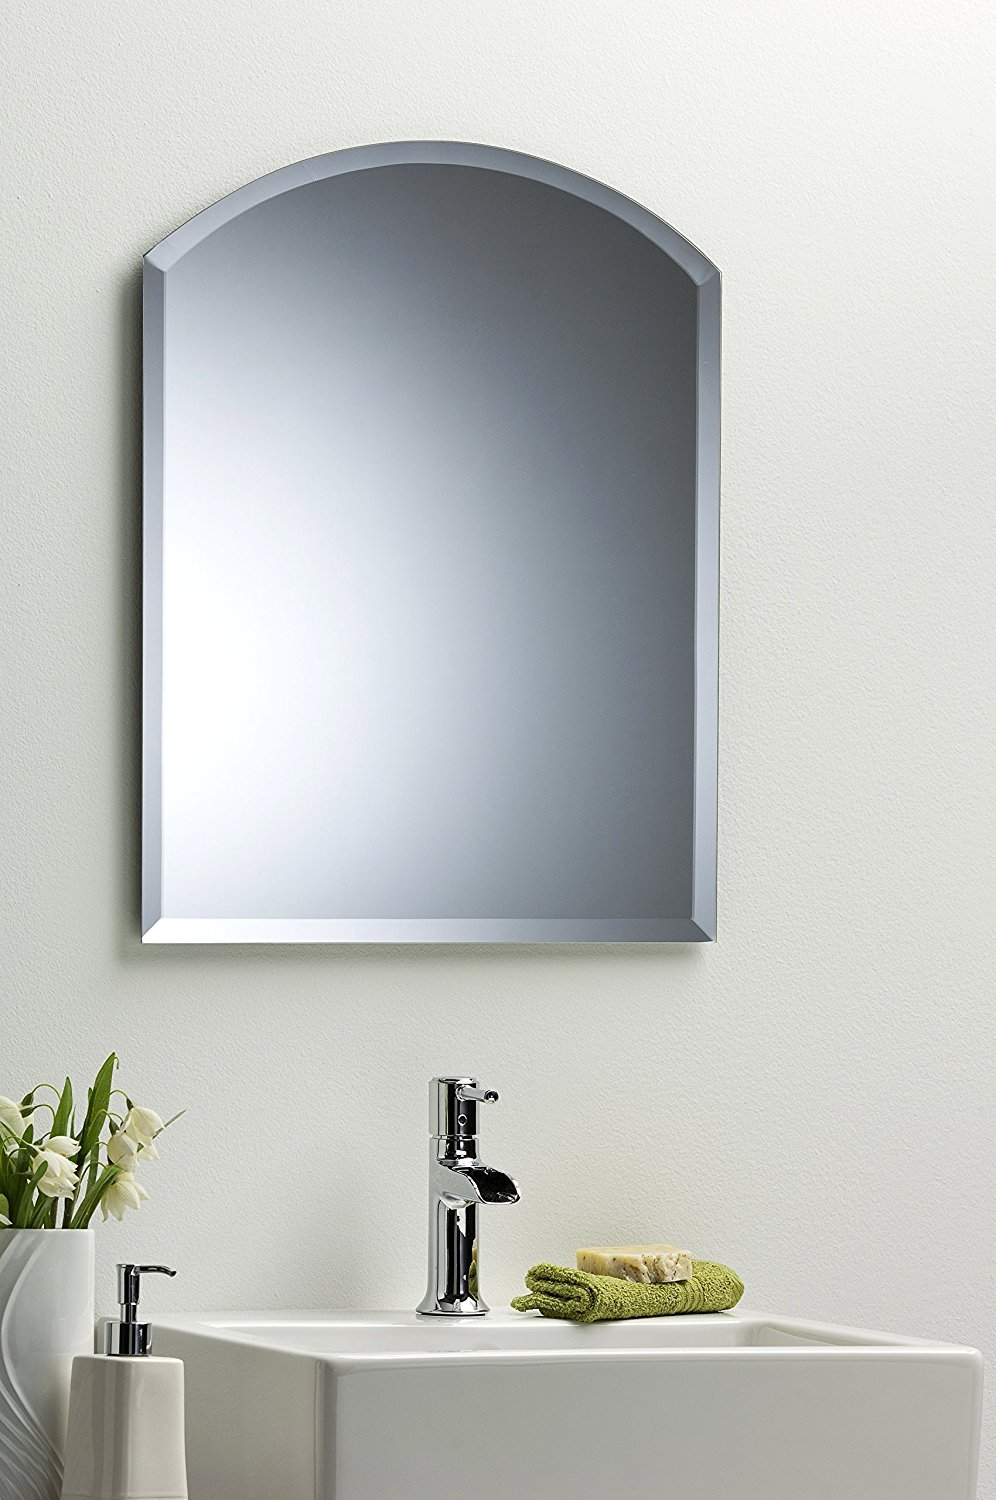 Arched Illuminated Bathroom Mirror